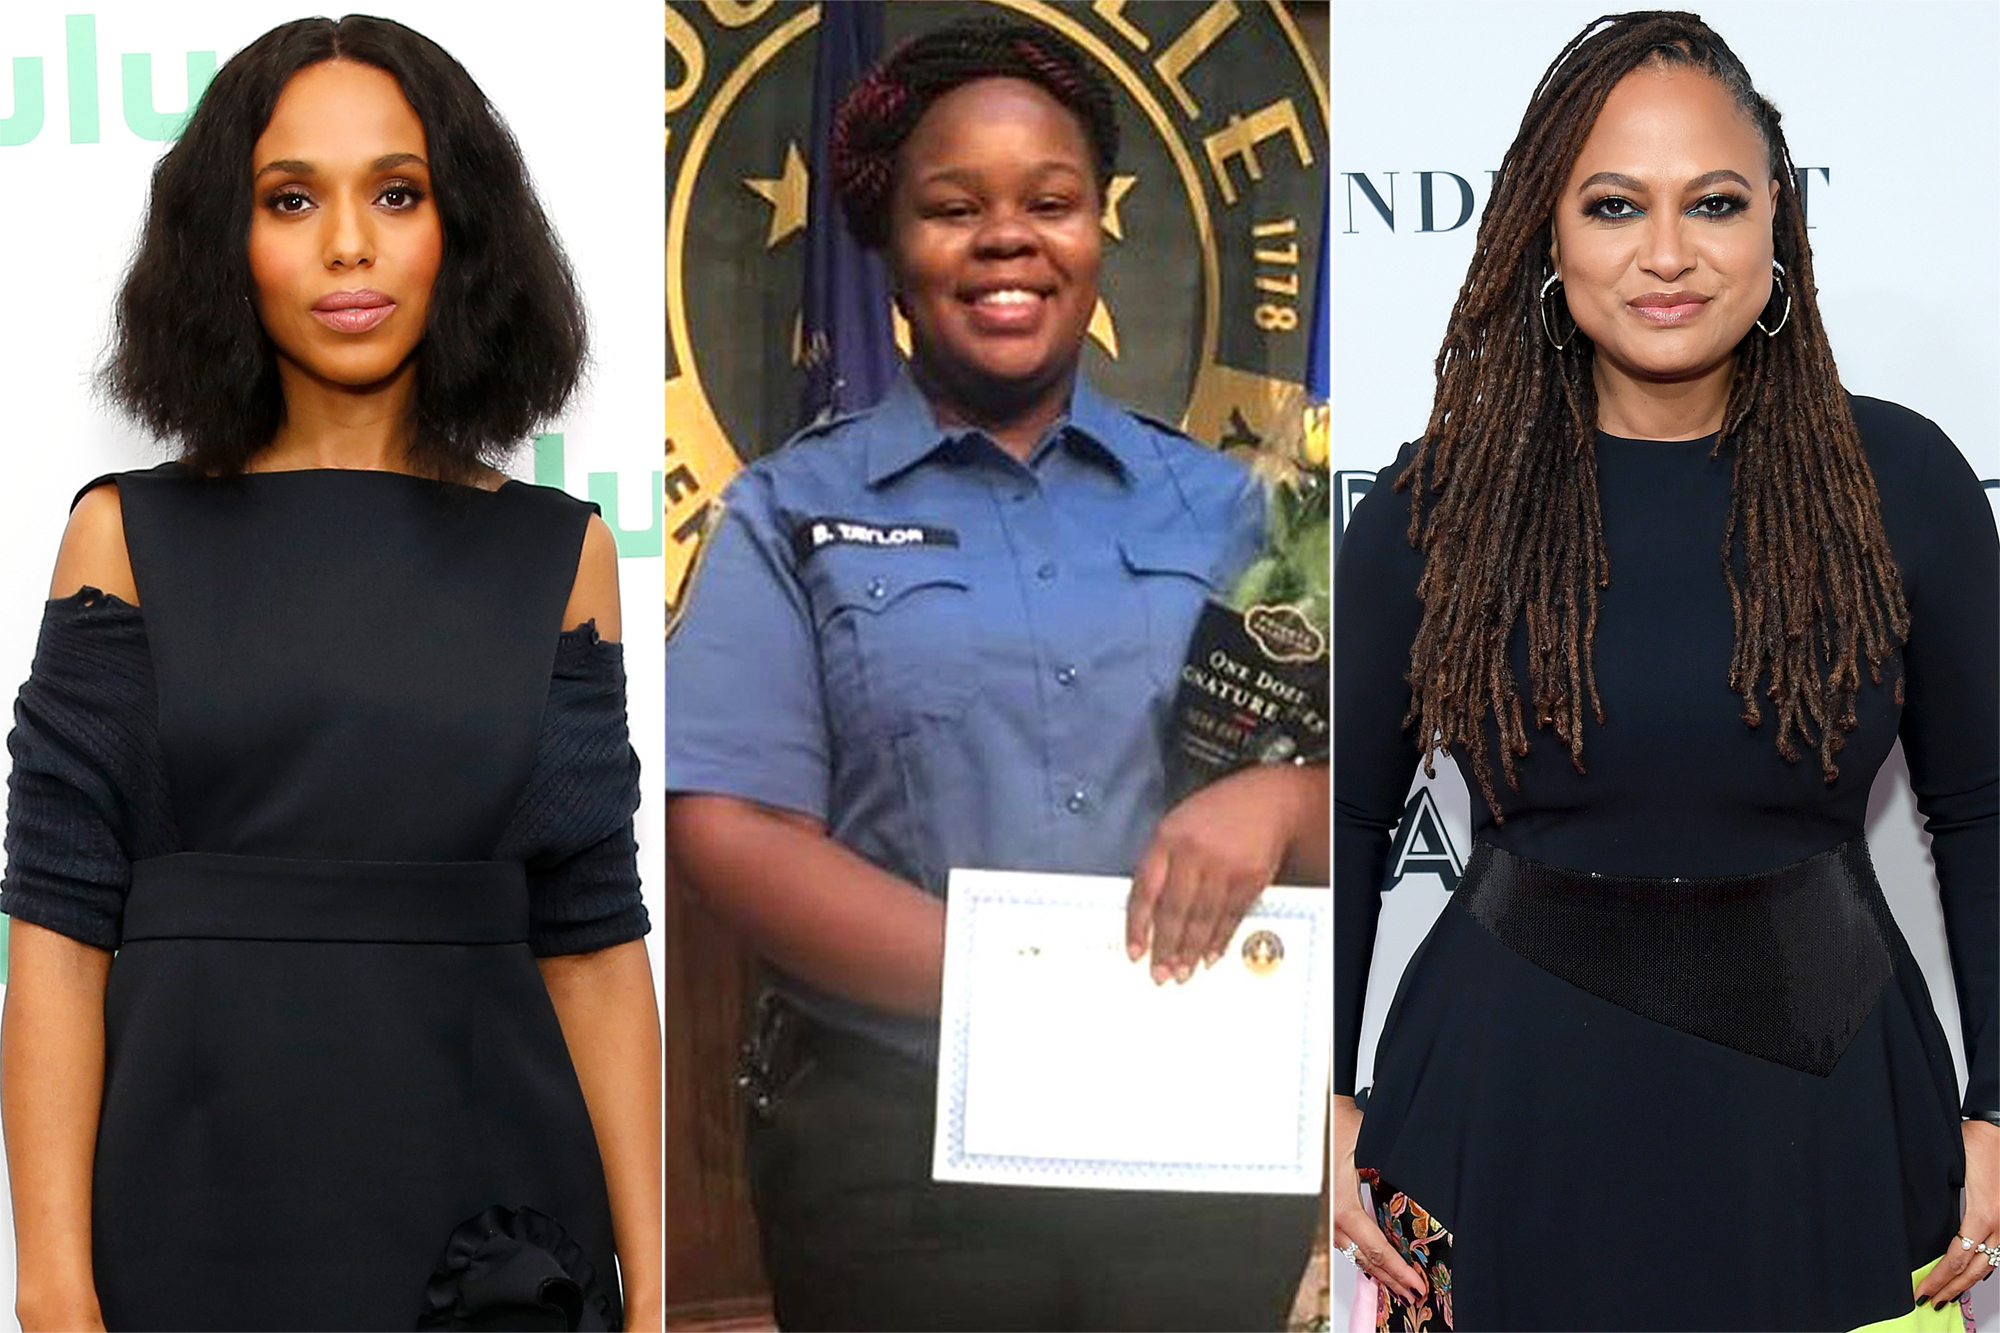 Kerry Washington, Breonna Taylor, Ava DuVernay